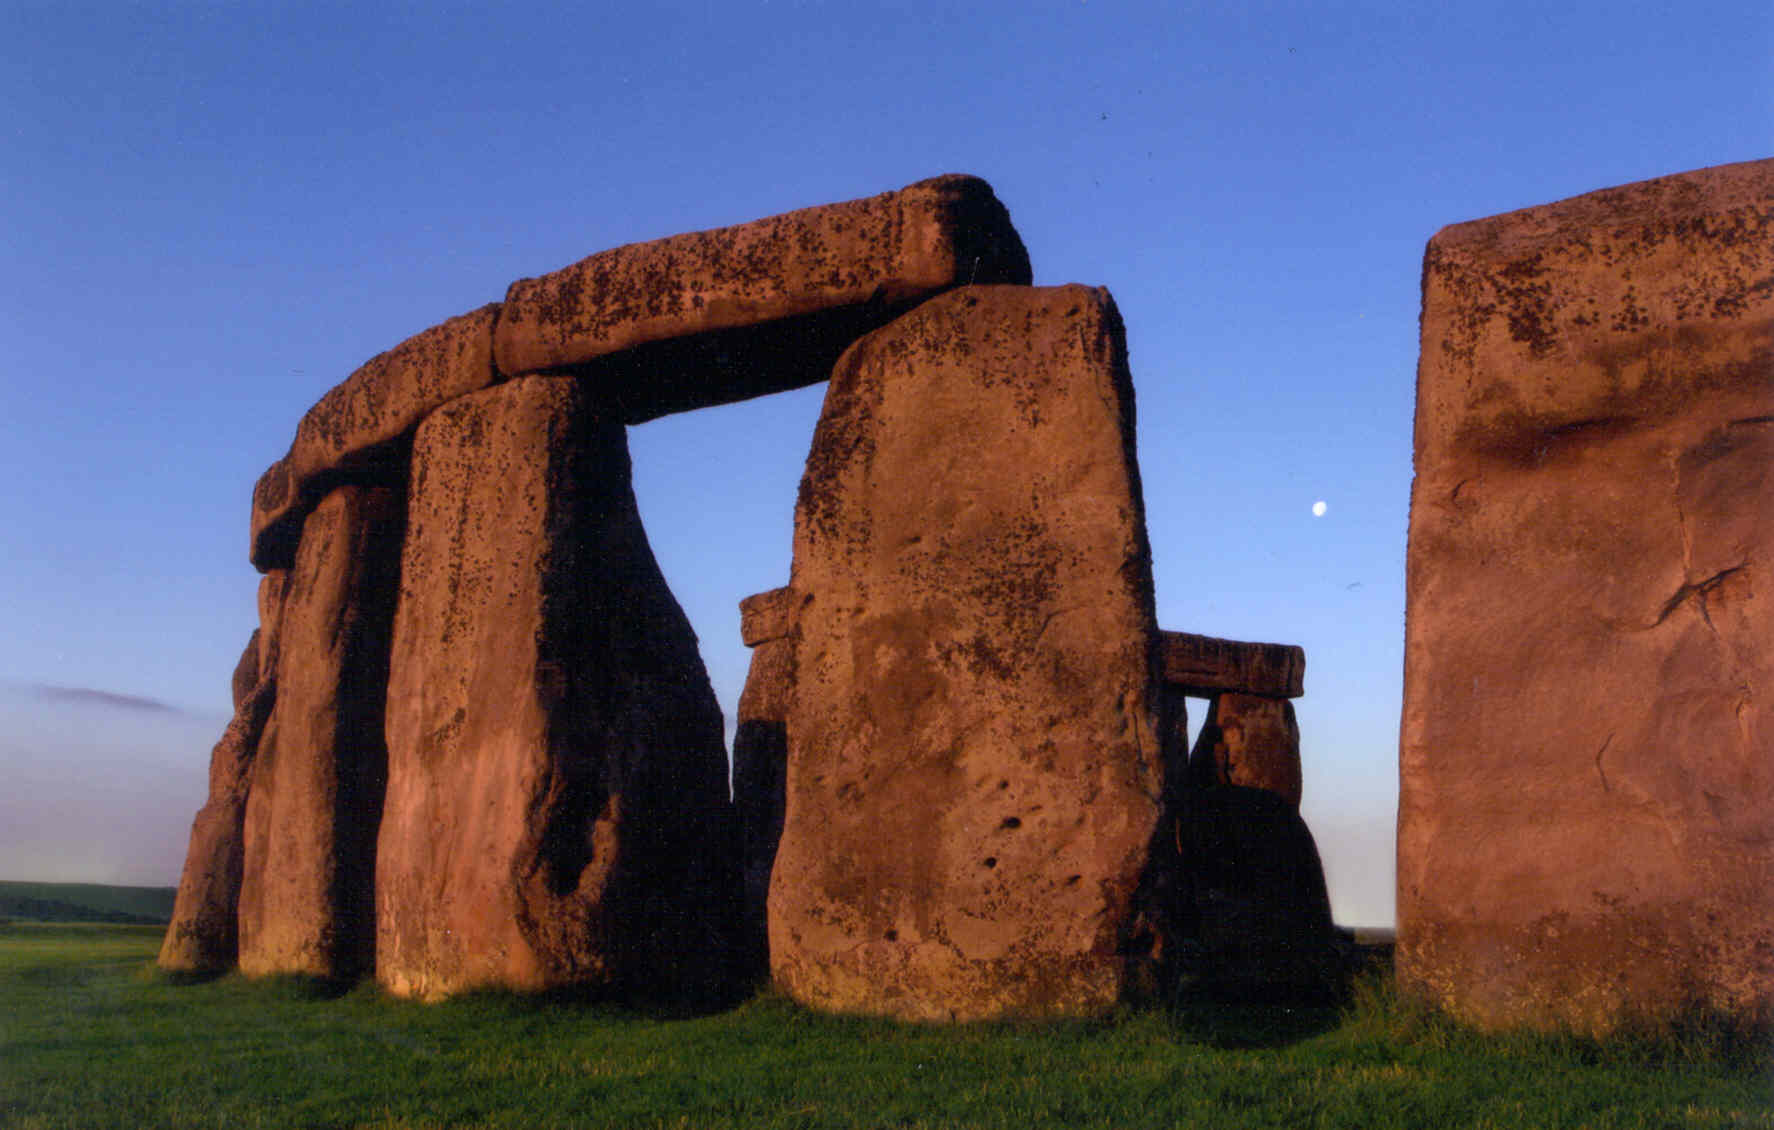 The Rock Pillars of Stonehenge